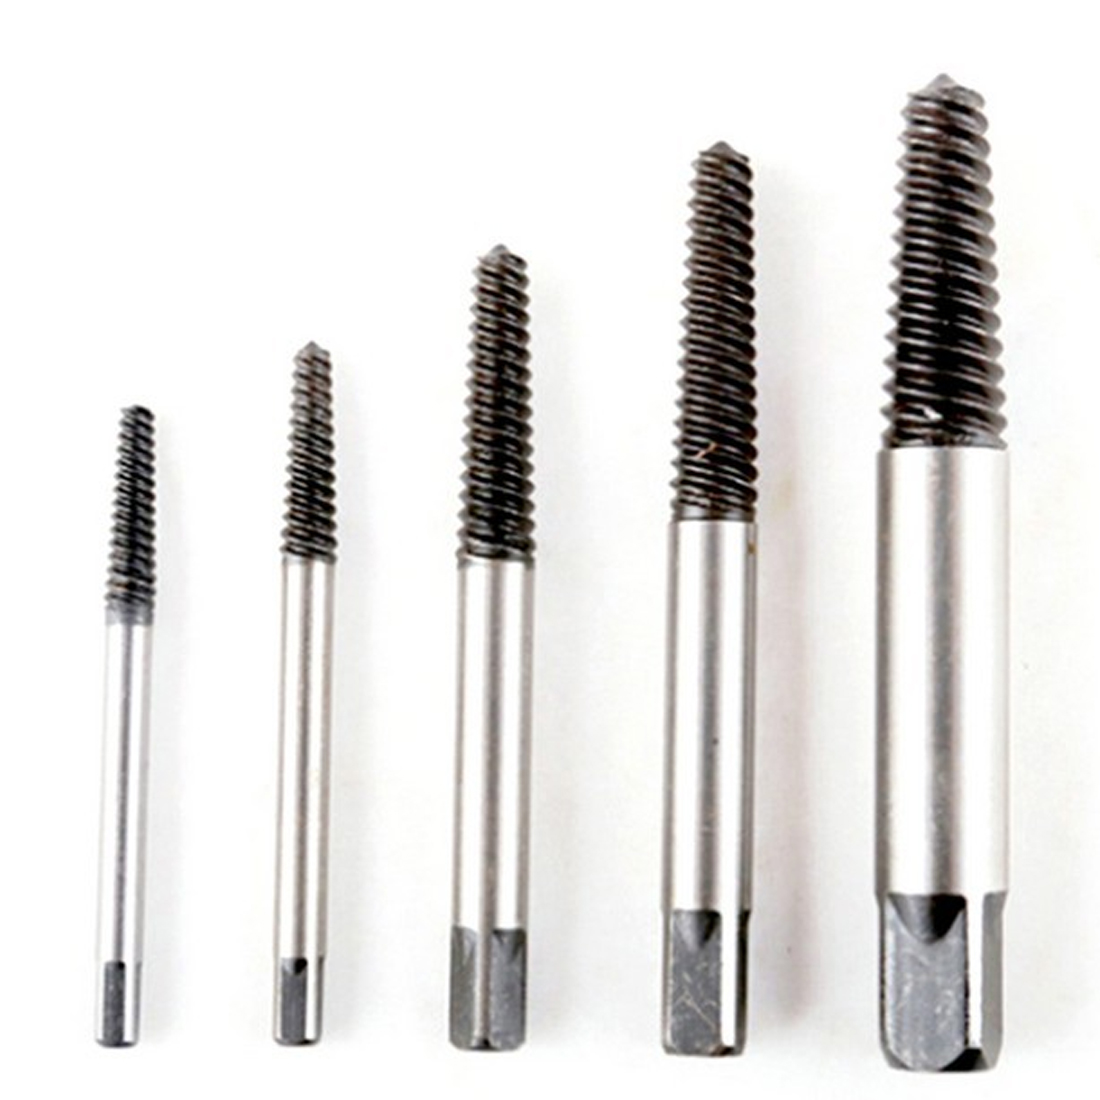 Hand & Power Tool Accessories Back To Search Resultstools Kind-Hearted 5pcs/set Carbon Steel Screw Extractor Broken Bolt Remover Drill Guide Bits Set Damaged Screws Extractor Removal Tool 100% Guarantee